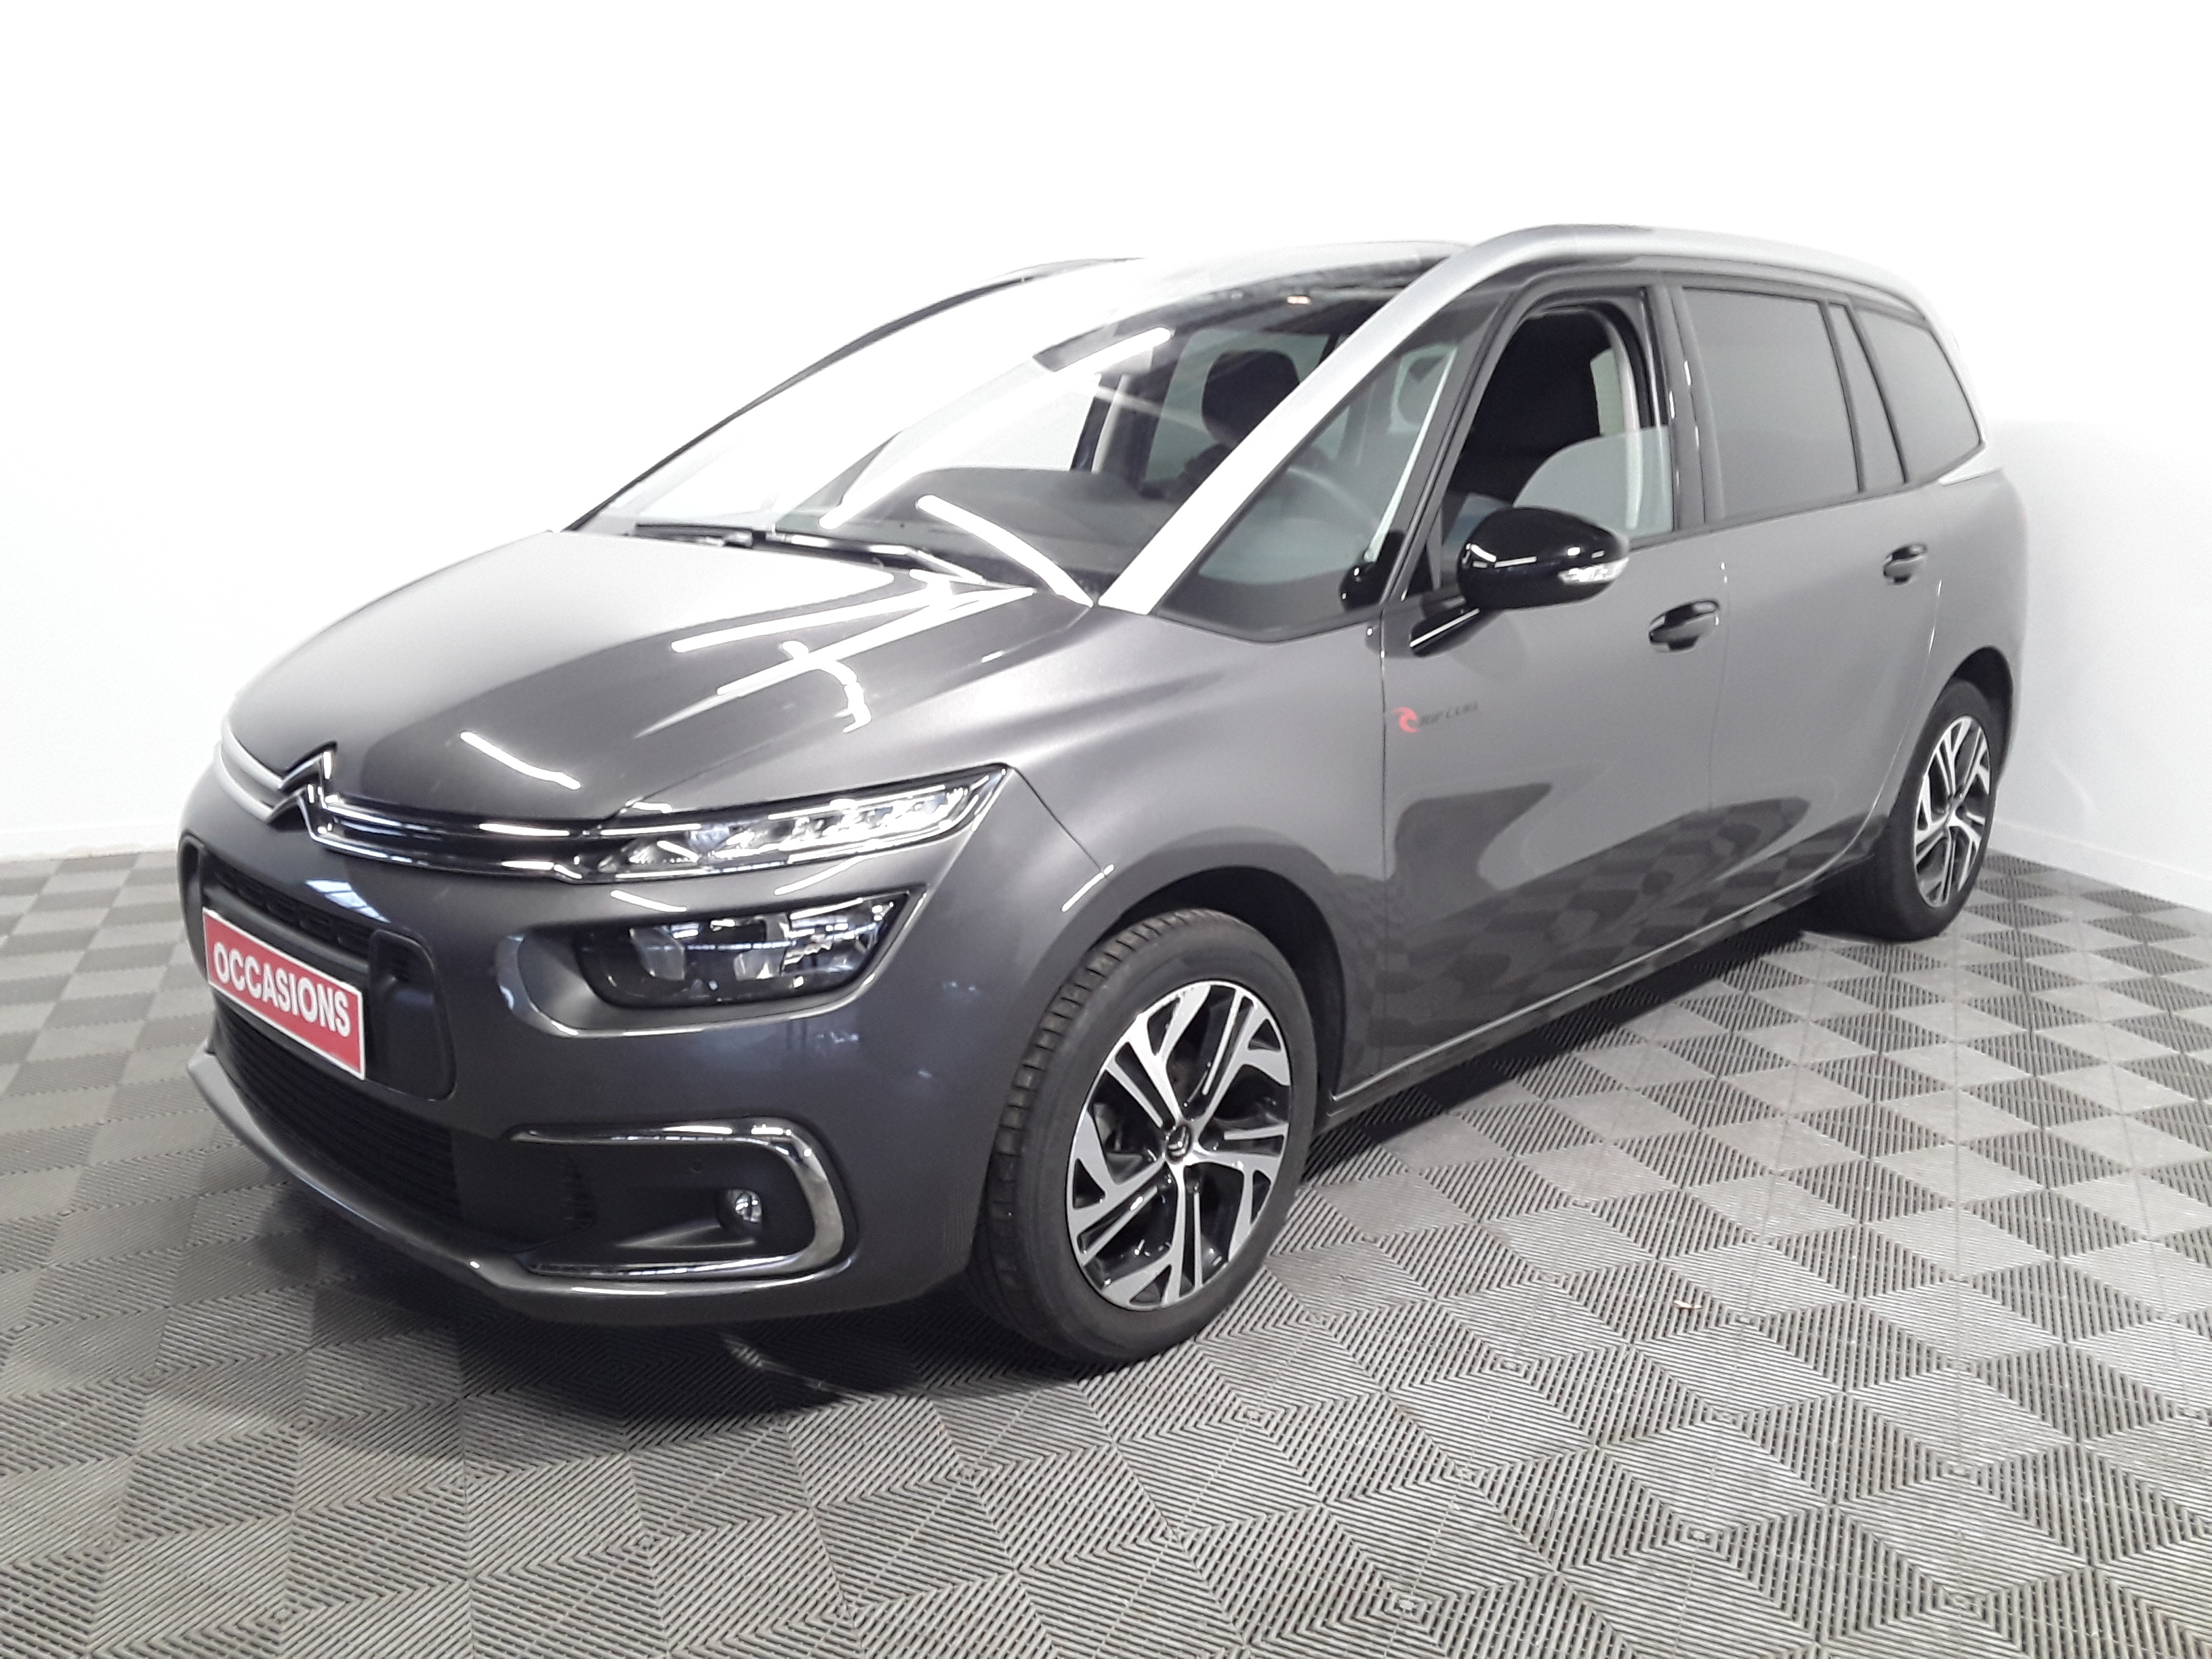 CITROEN GRAND C4 SPACETOURER 2019 - Photo n°1